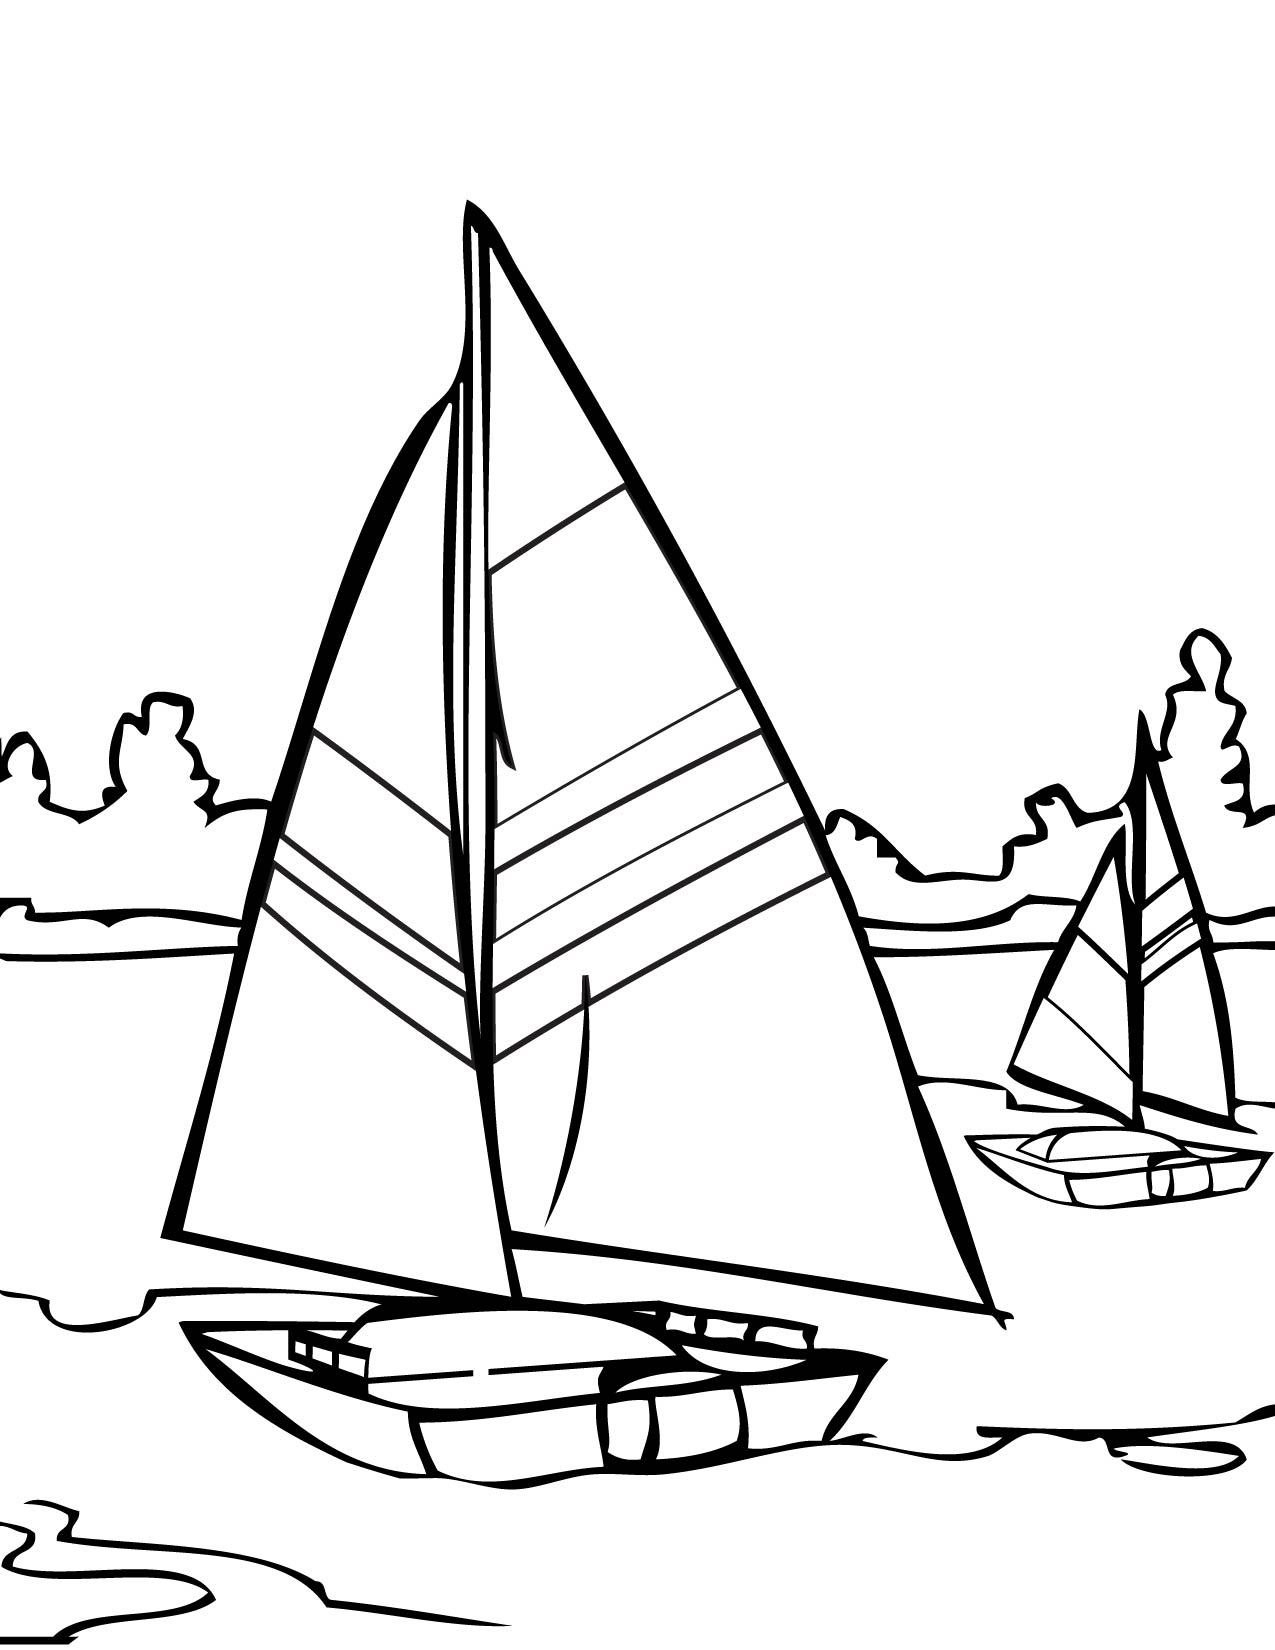 14 printable pictures of sailing